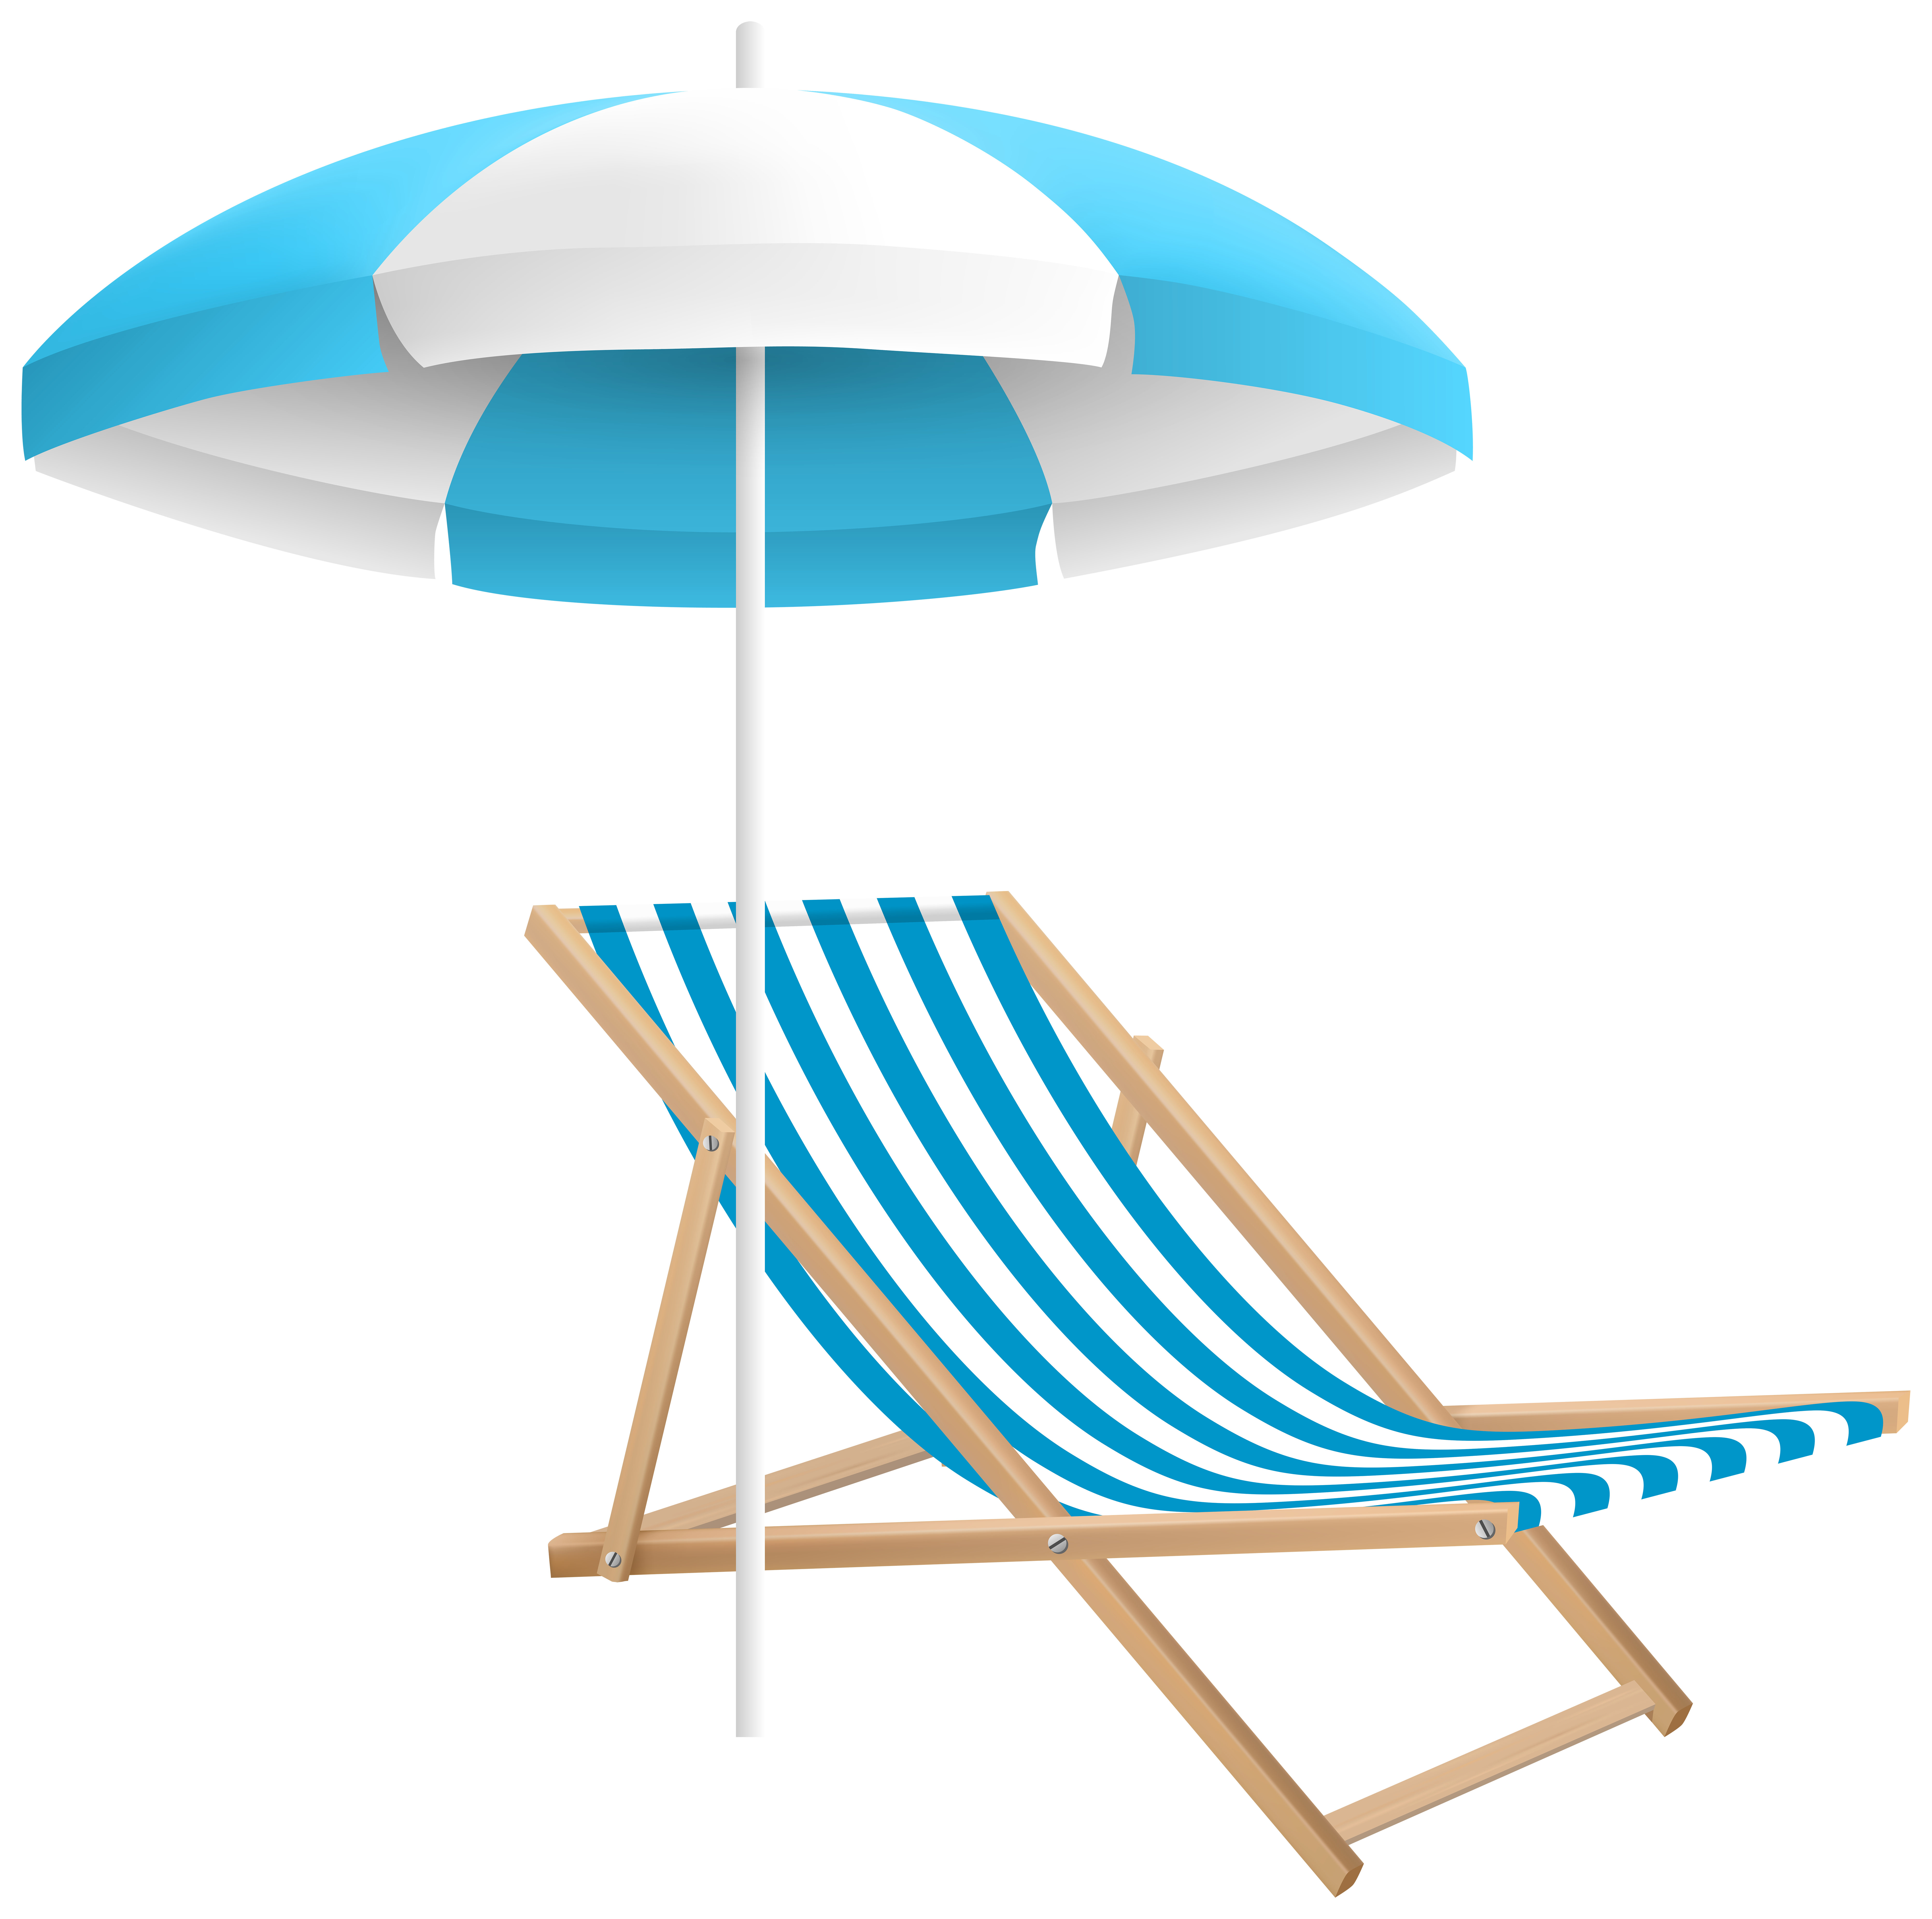 Beach ctrasnperant clipart clip free library Beach Chair and Umbrella PNG Clip Art Transparent Image | Gallery ... clip free library